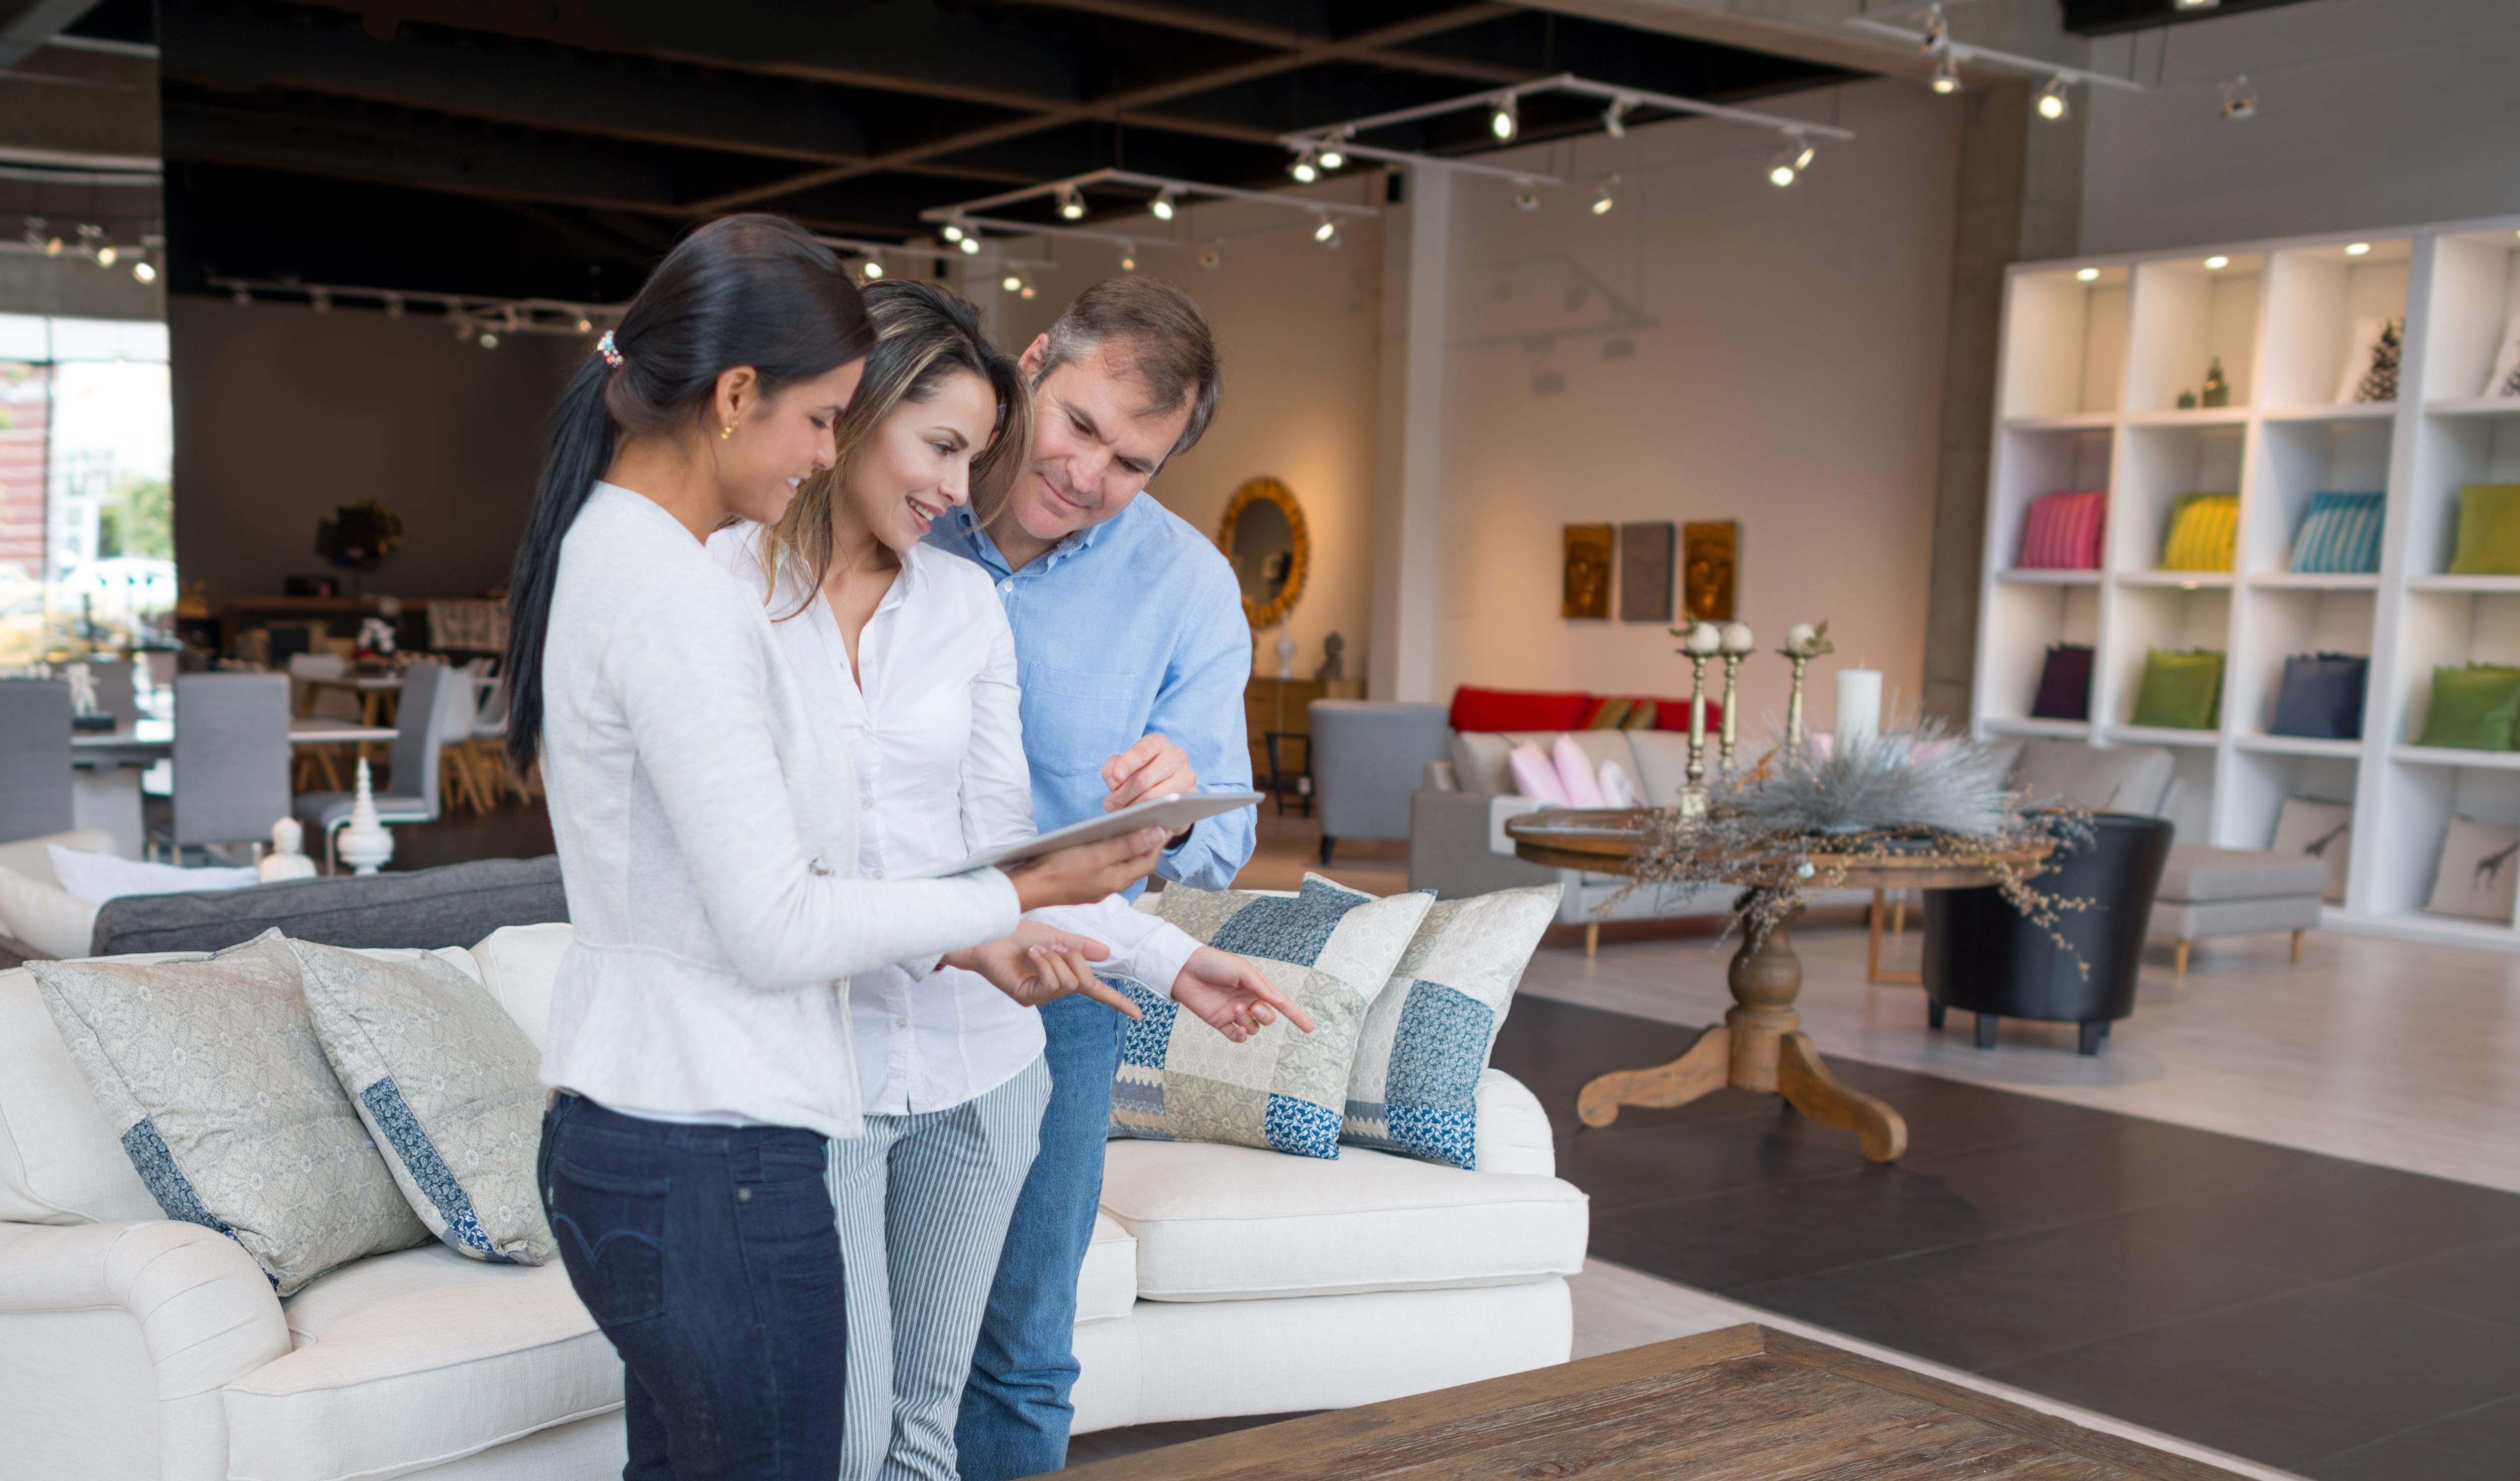 Furniture Retailers Smell More Profits With Scent Marketing